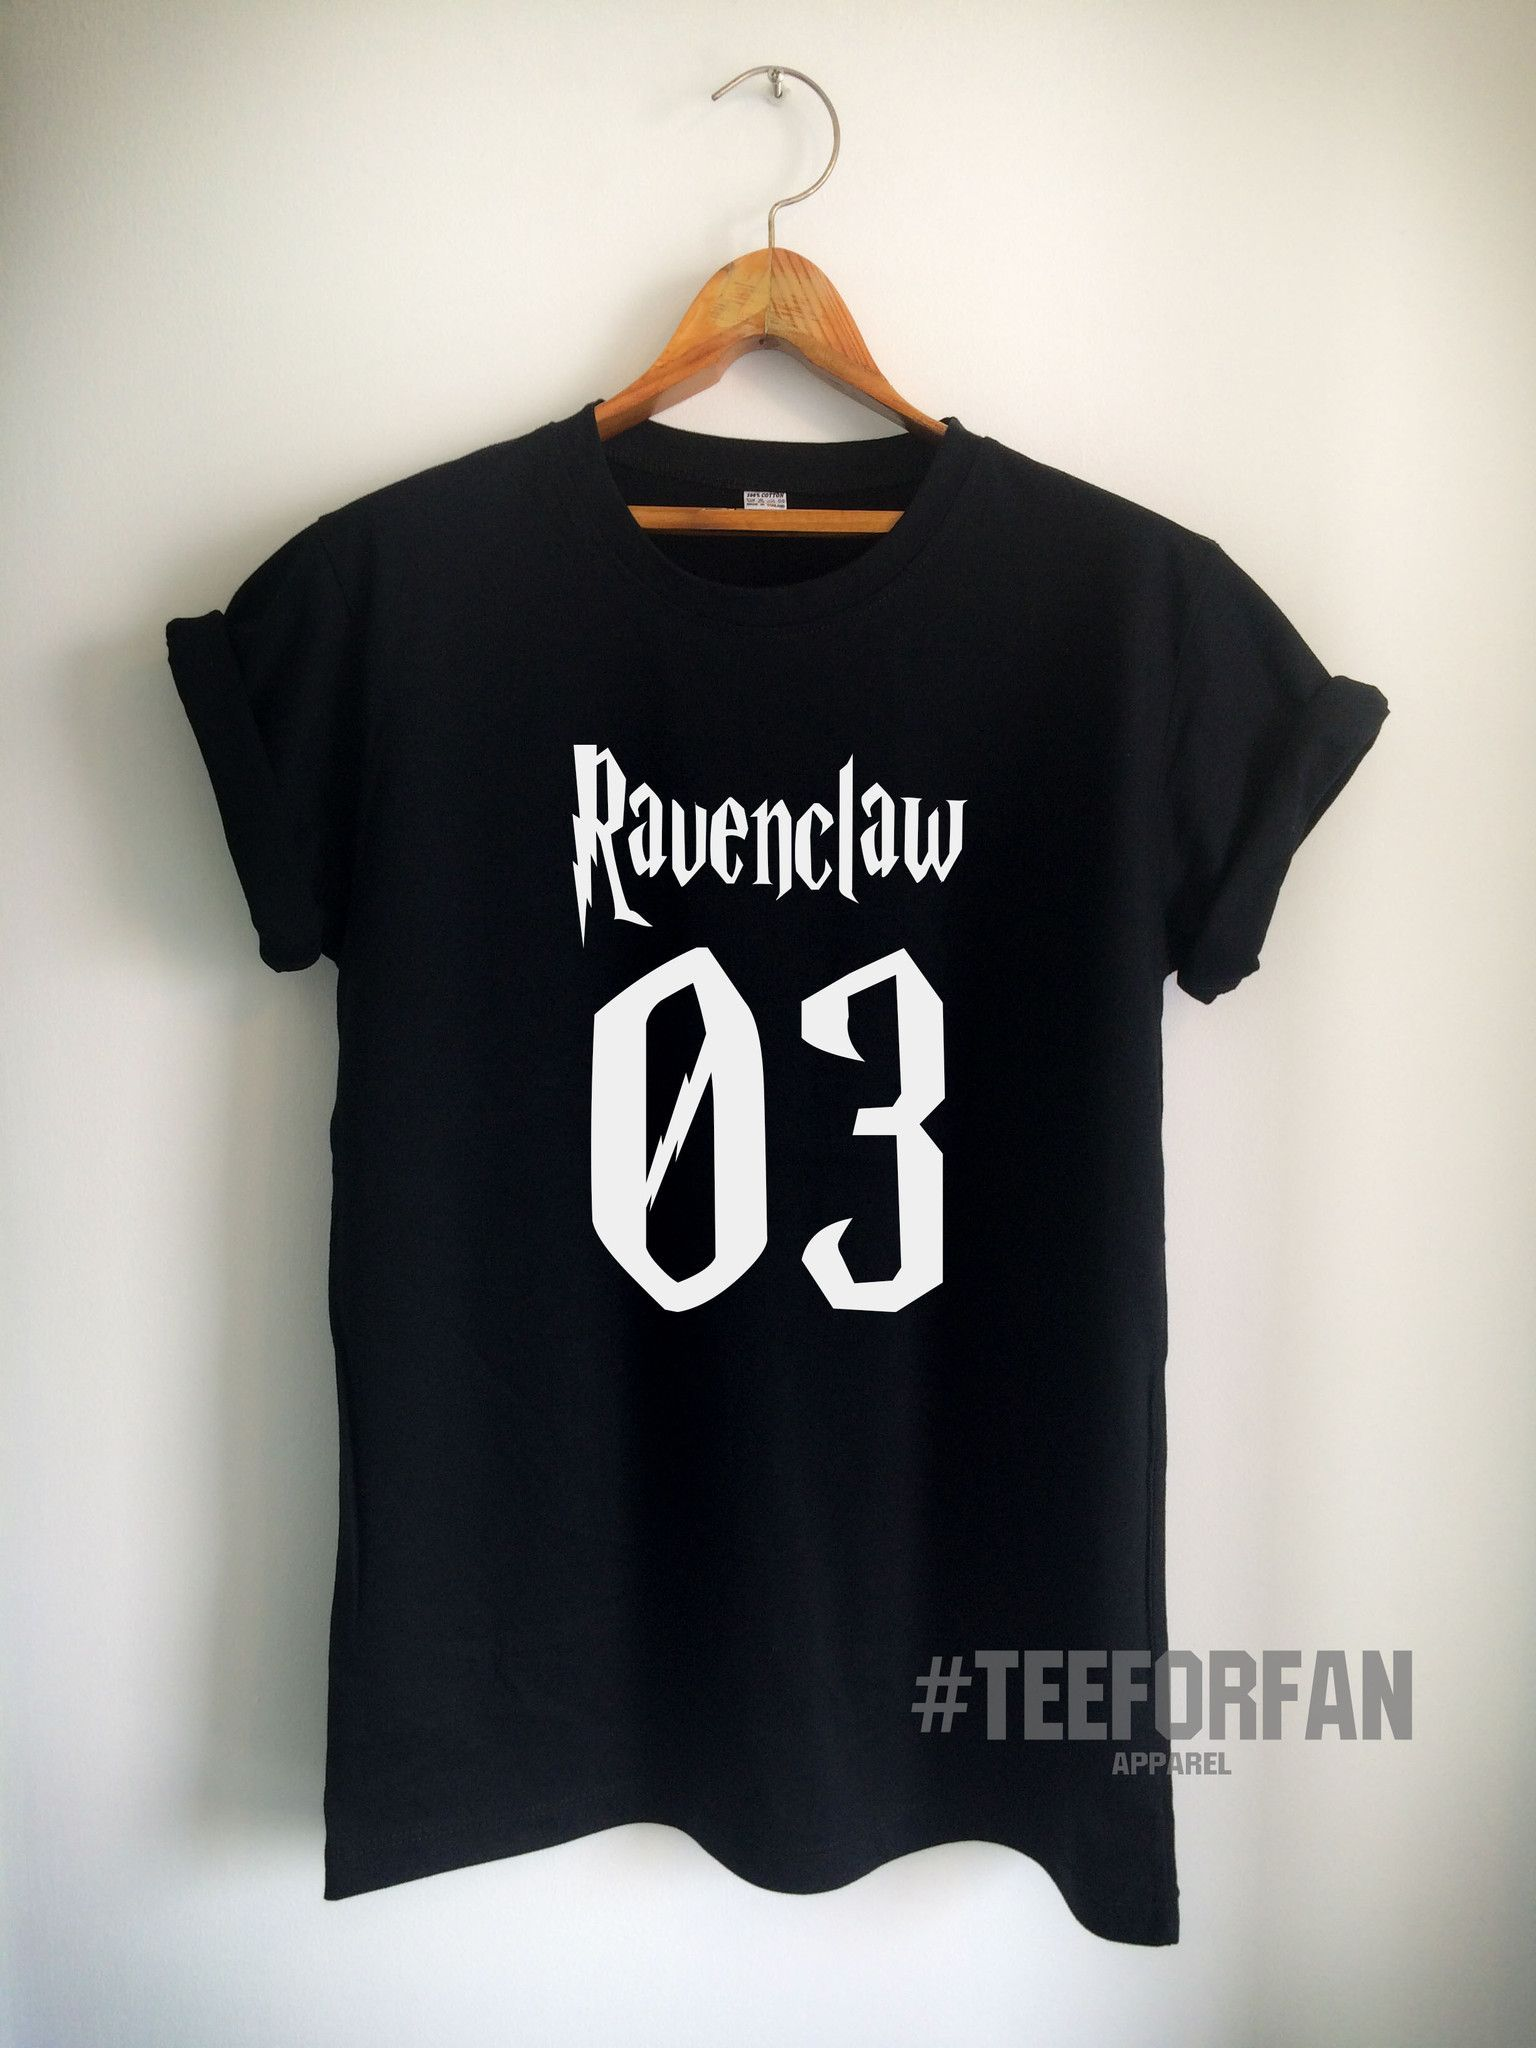 162ce2e3cf1 Harry Potter Shirt Ravenclaw 03 Quidditch T-Shirt Print on Front or Back  Side Unisex Women Men T-Shirt White Black Grey Red